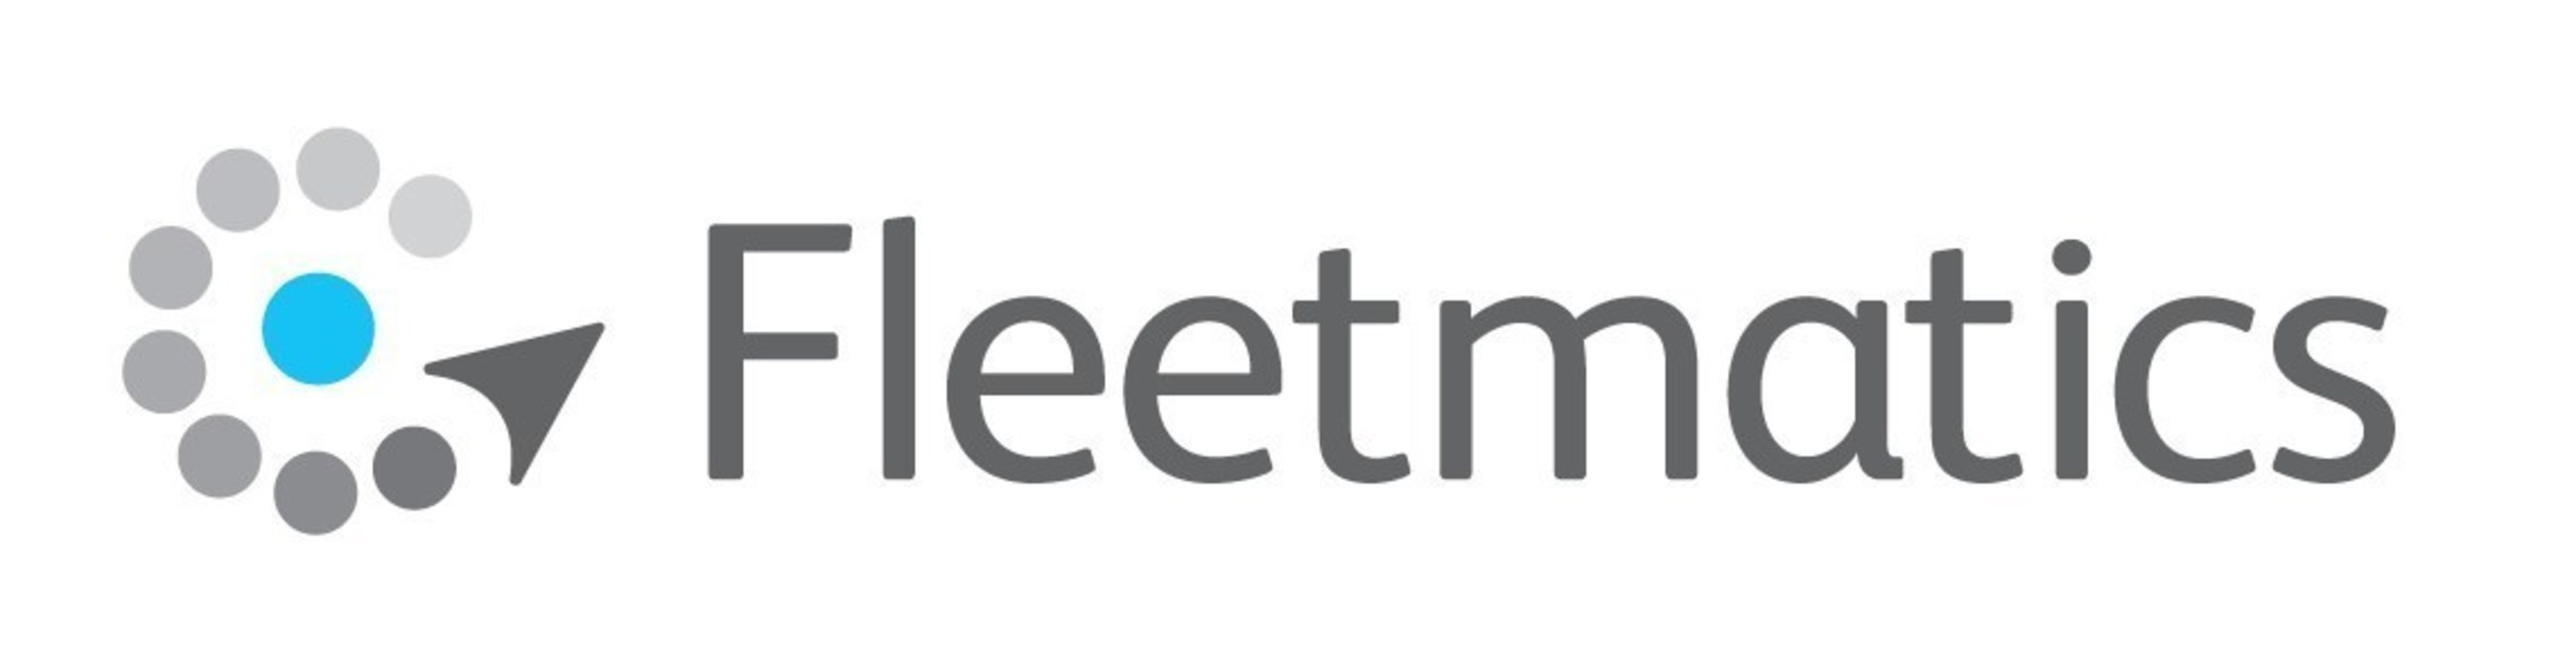 Fleetmatics is a leading global provider of fleet and mobile workforce management solutions.